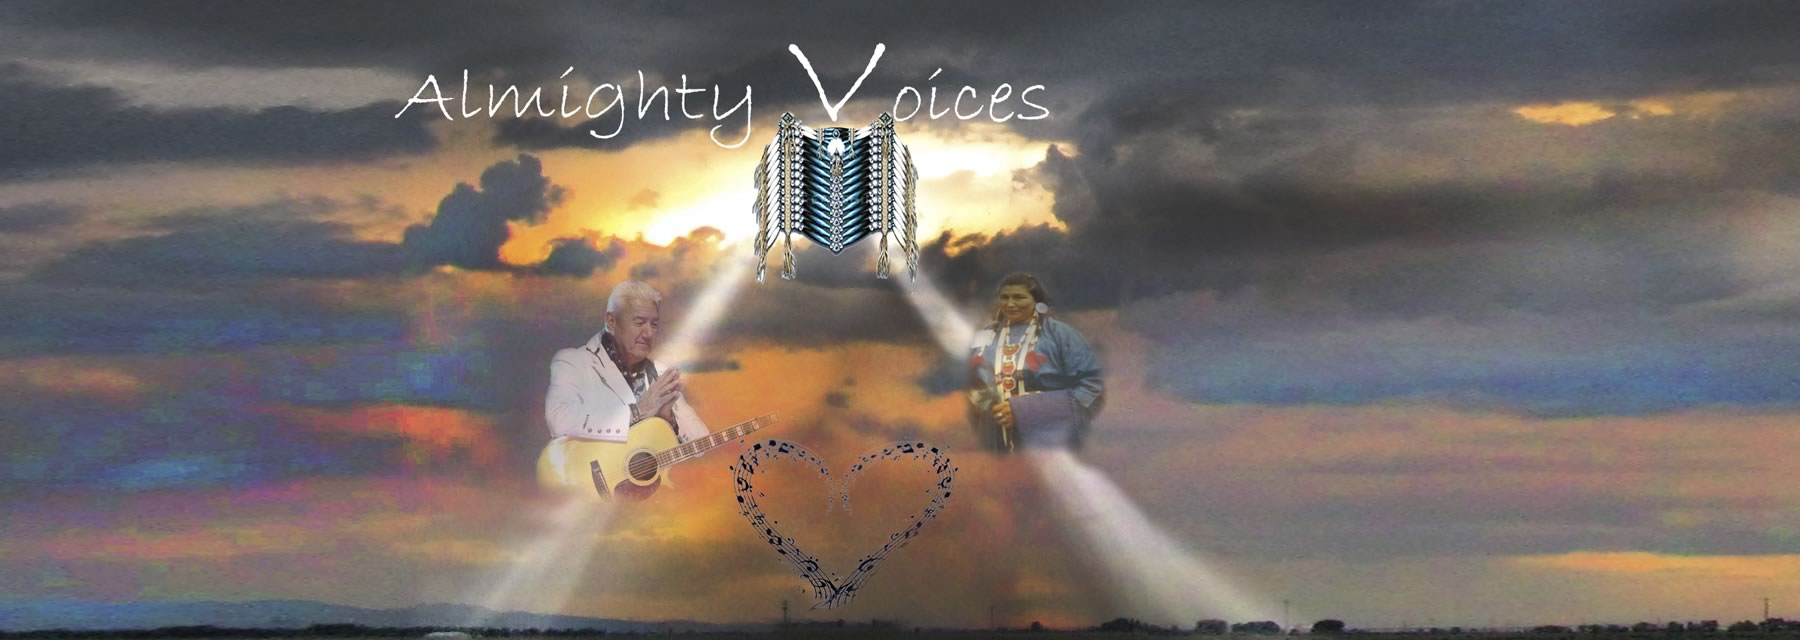 Almighty Voices